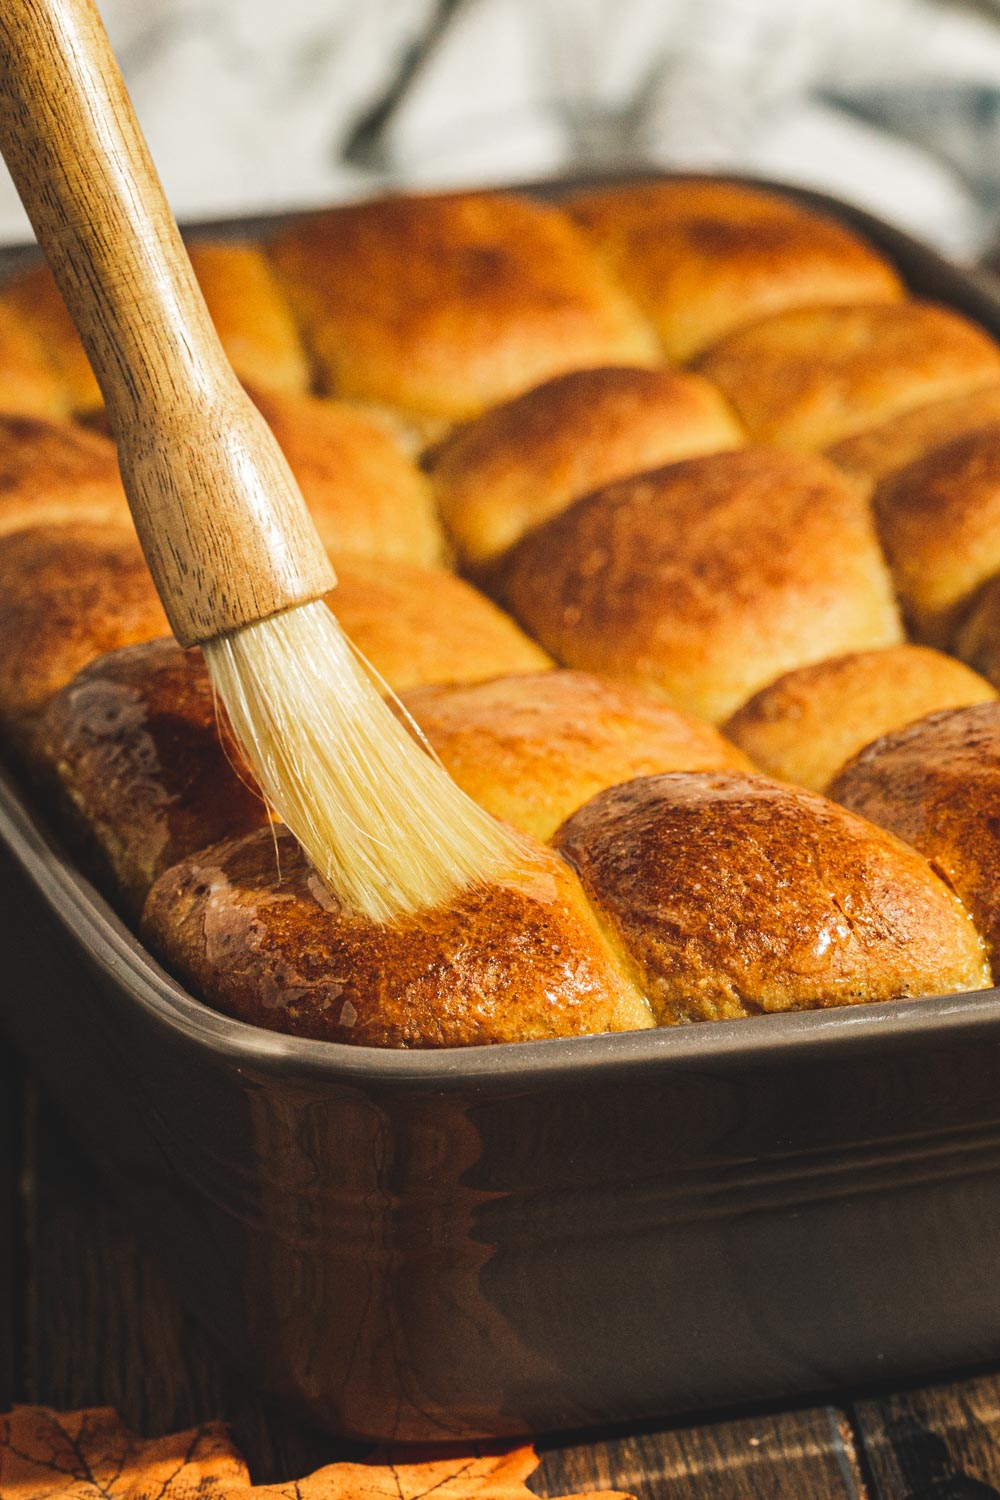 Brushing pumpkin dinner rolls in a gray baking dish with butter.